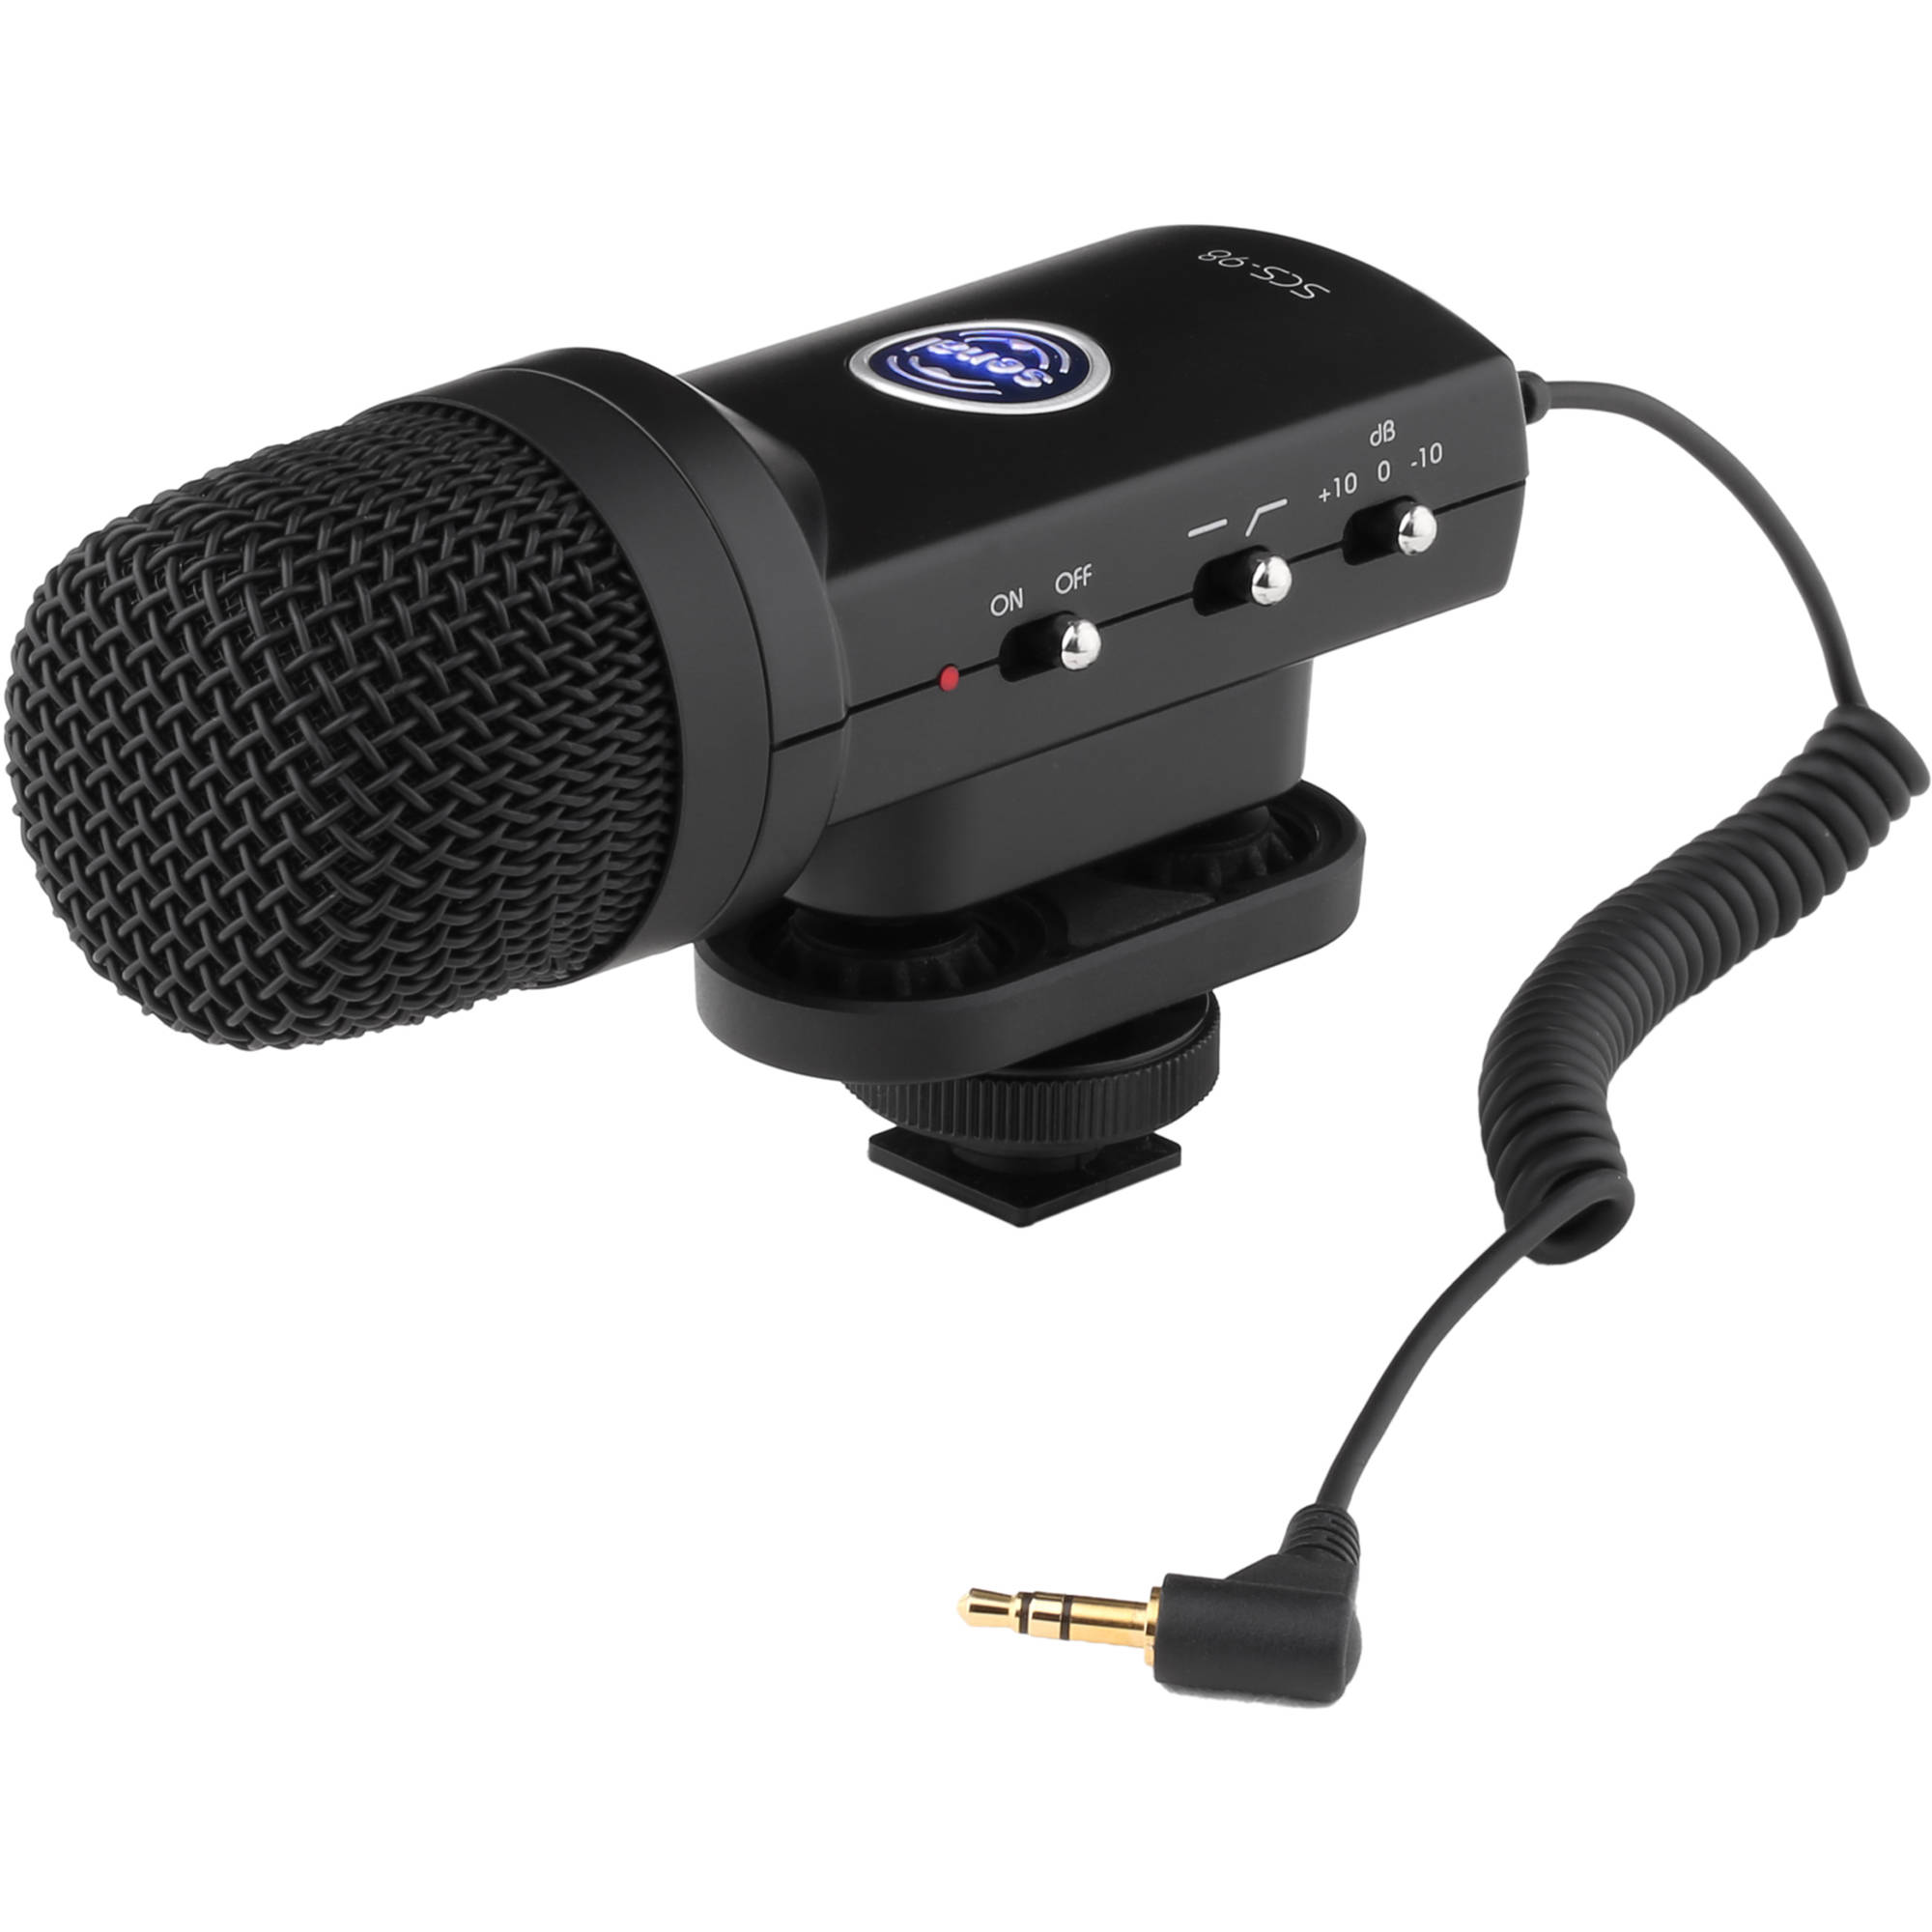 Dslr Microphones Bh Photo Video Multidirectional Microphone Amplifier Senal Scs 98 Stereo